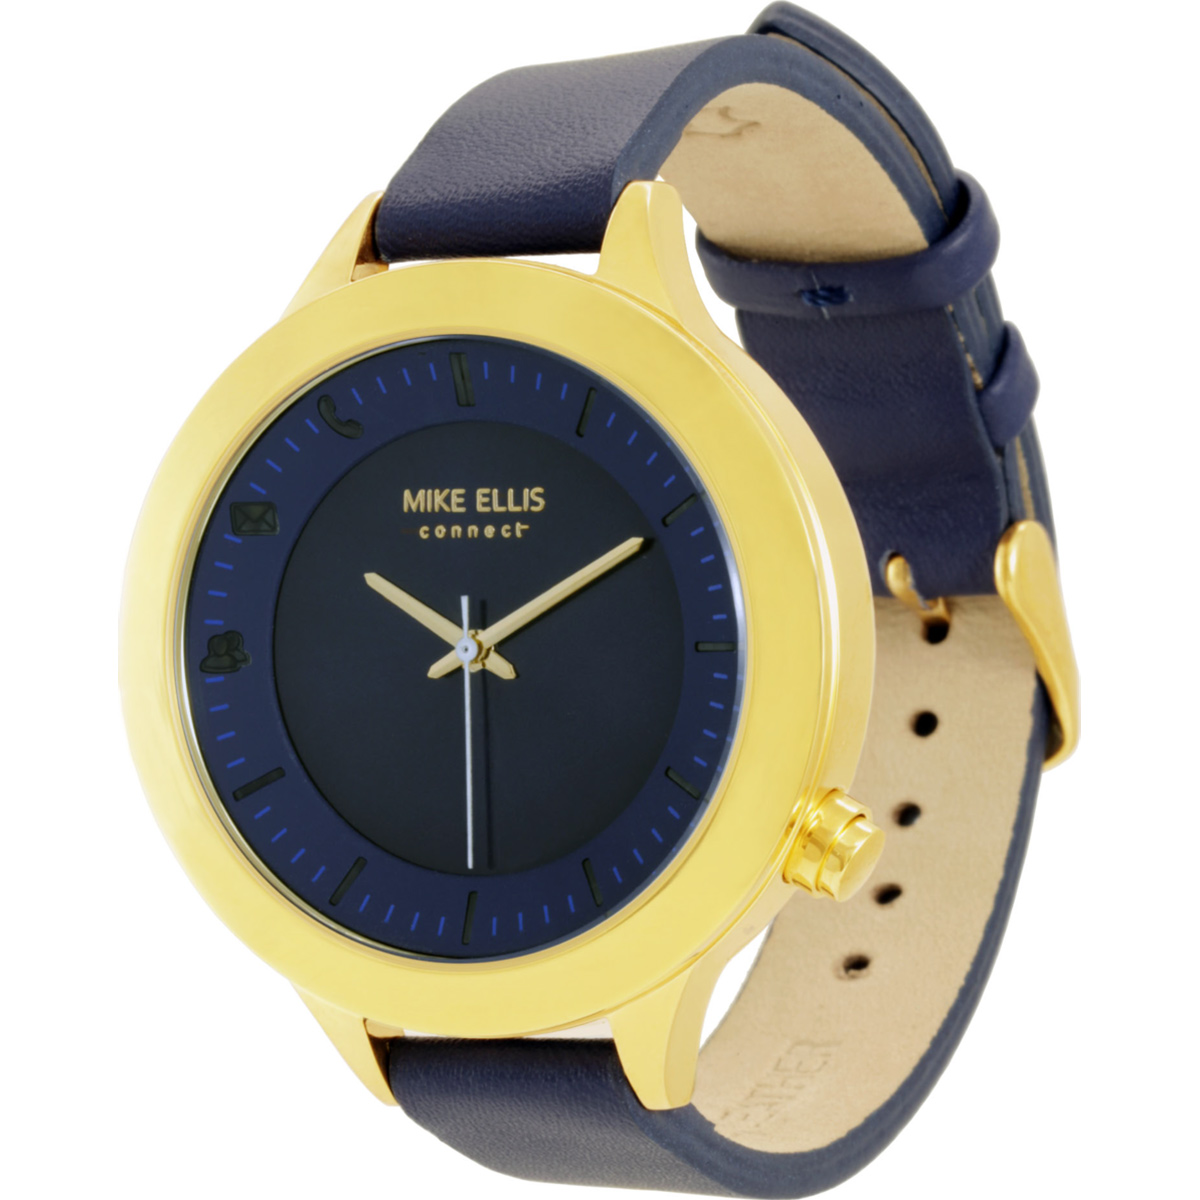 Mike Ellis Connect Watch Liz Edelstahl, Leder gelbgold/blau L4831B